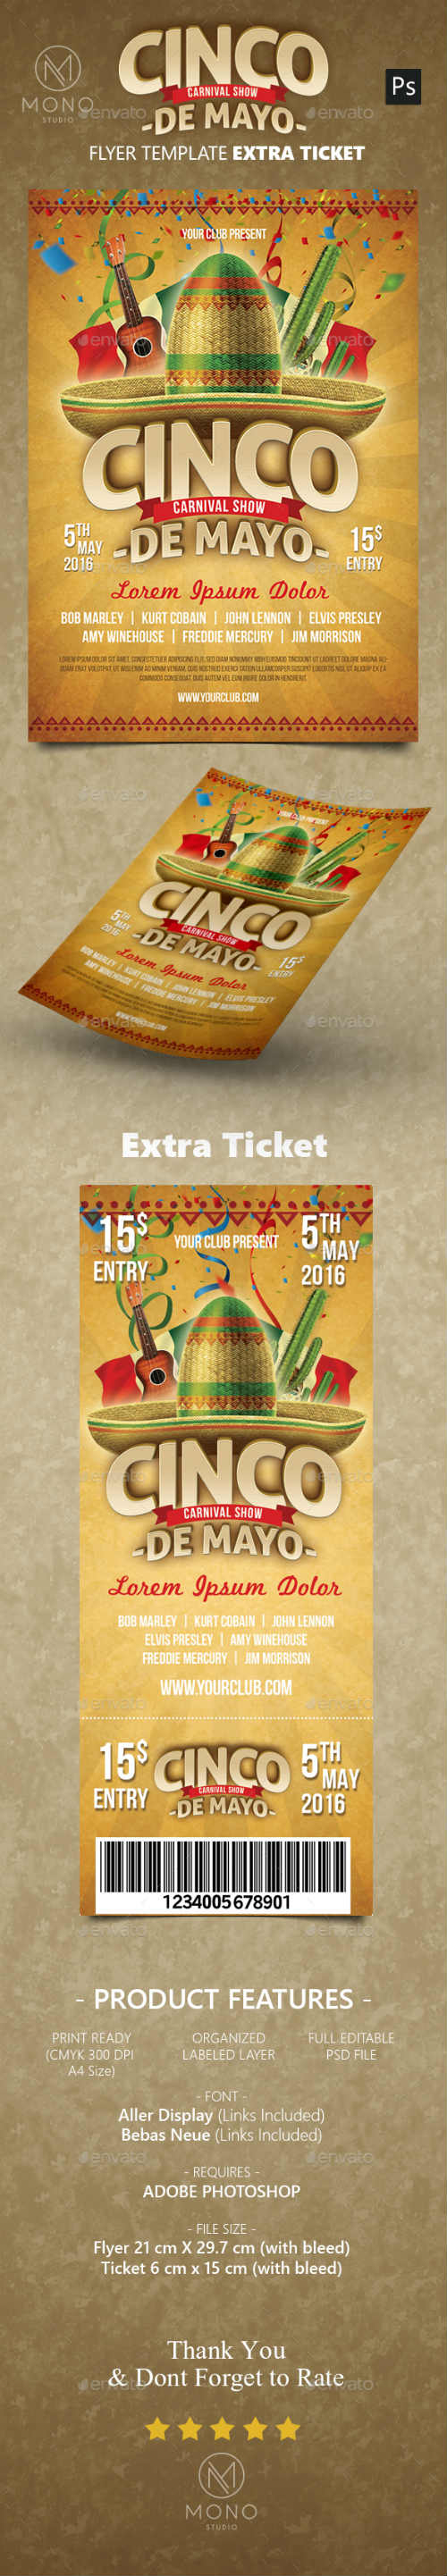 Cinco de Mayo Flyer 15882229